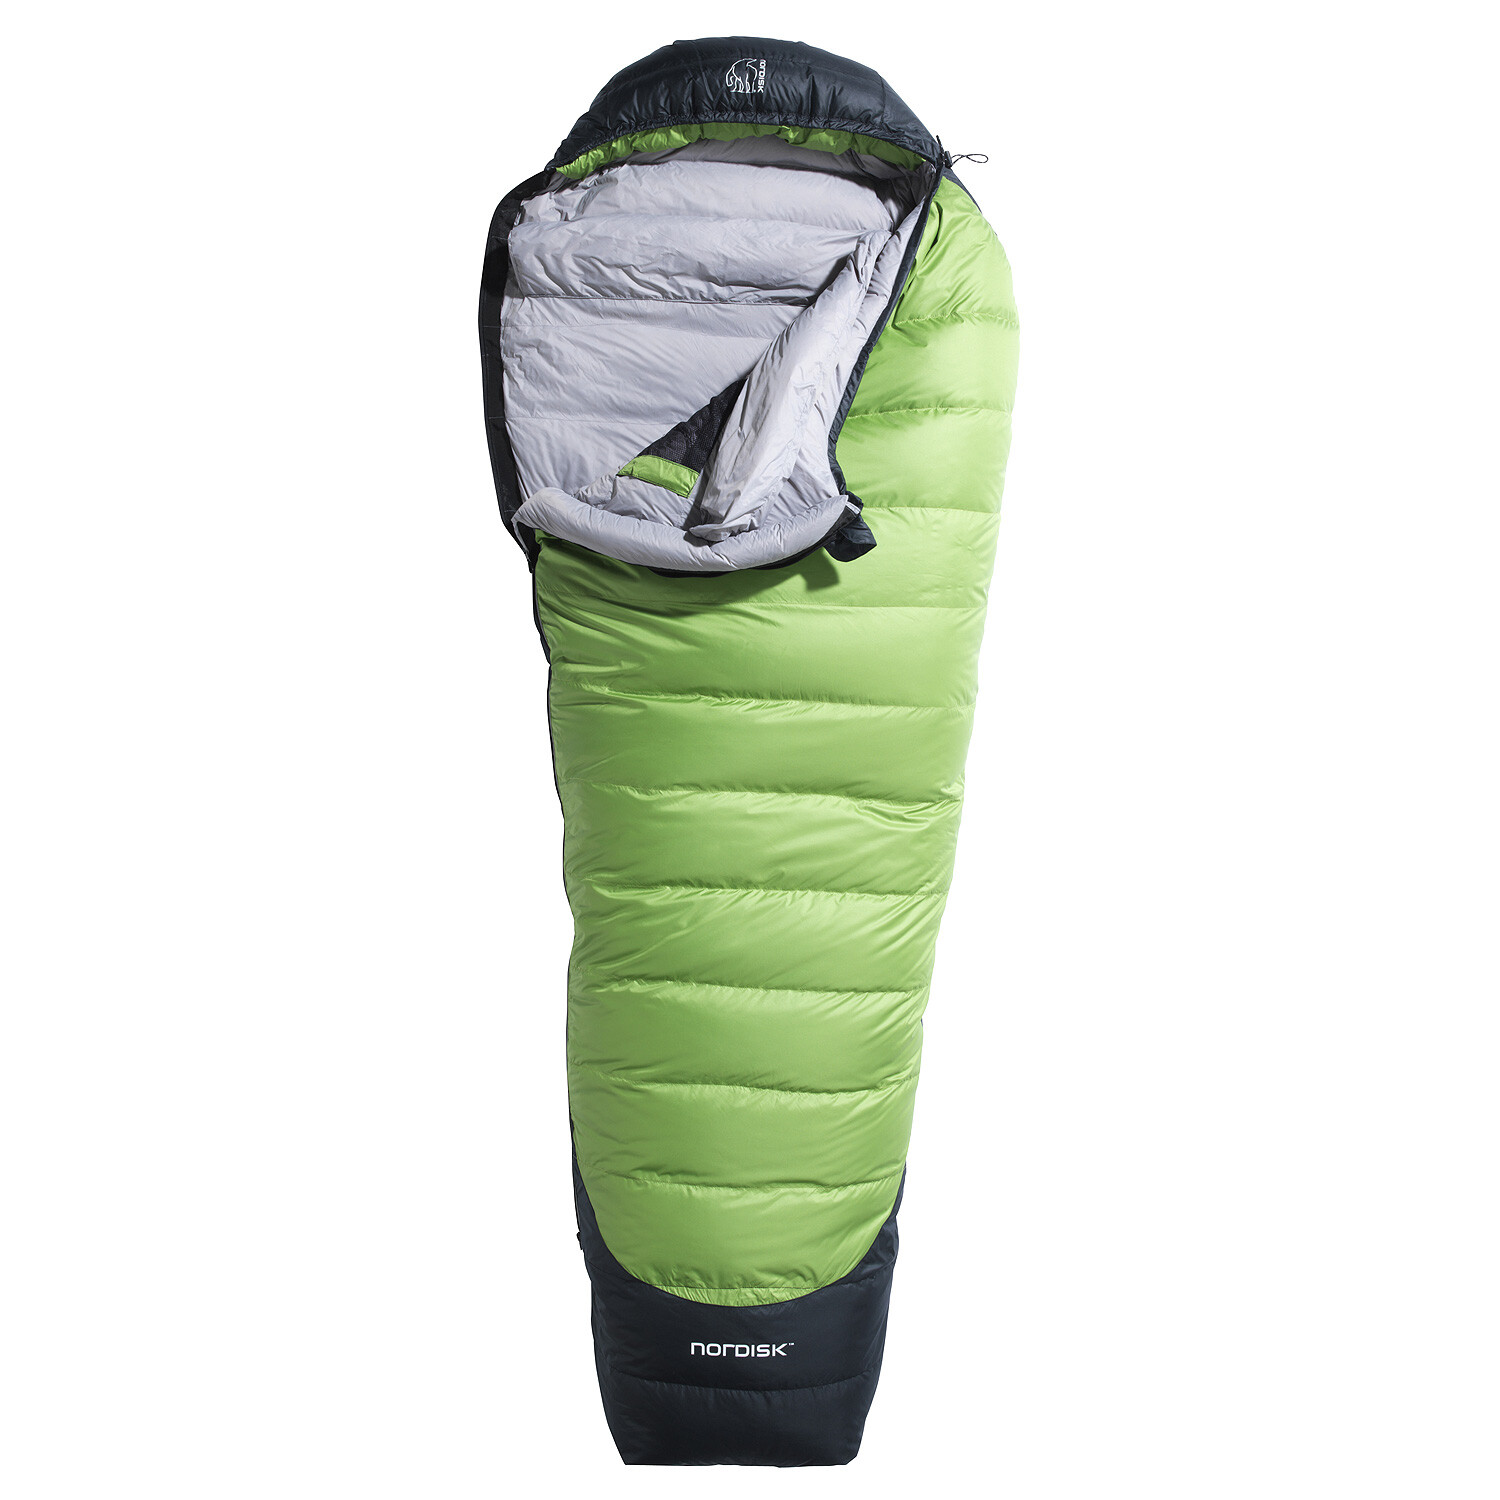 Nordisk Celsius -10° Sovepose XL, peridot green/black (2019) | Misc. Transportation and Storage